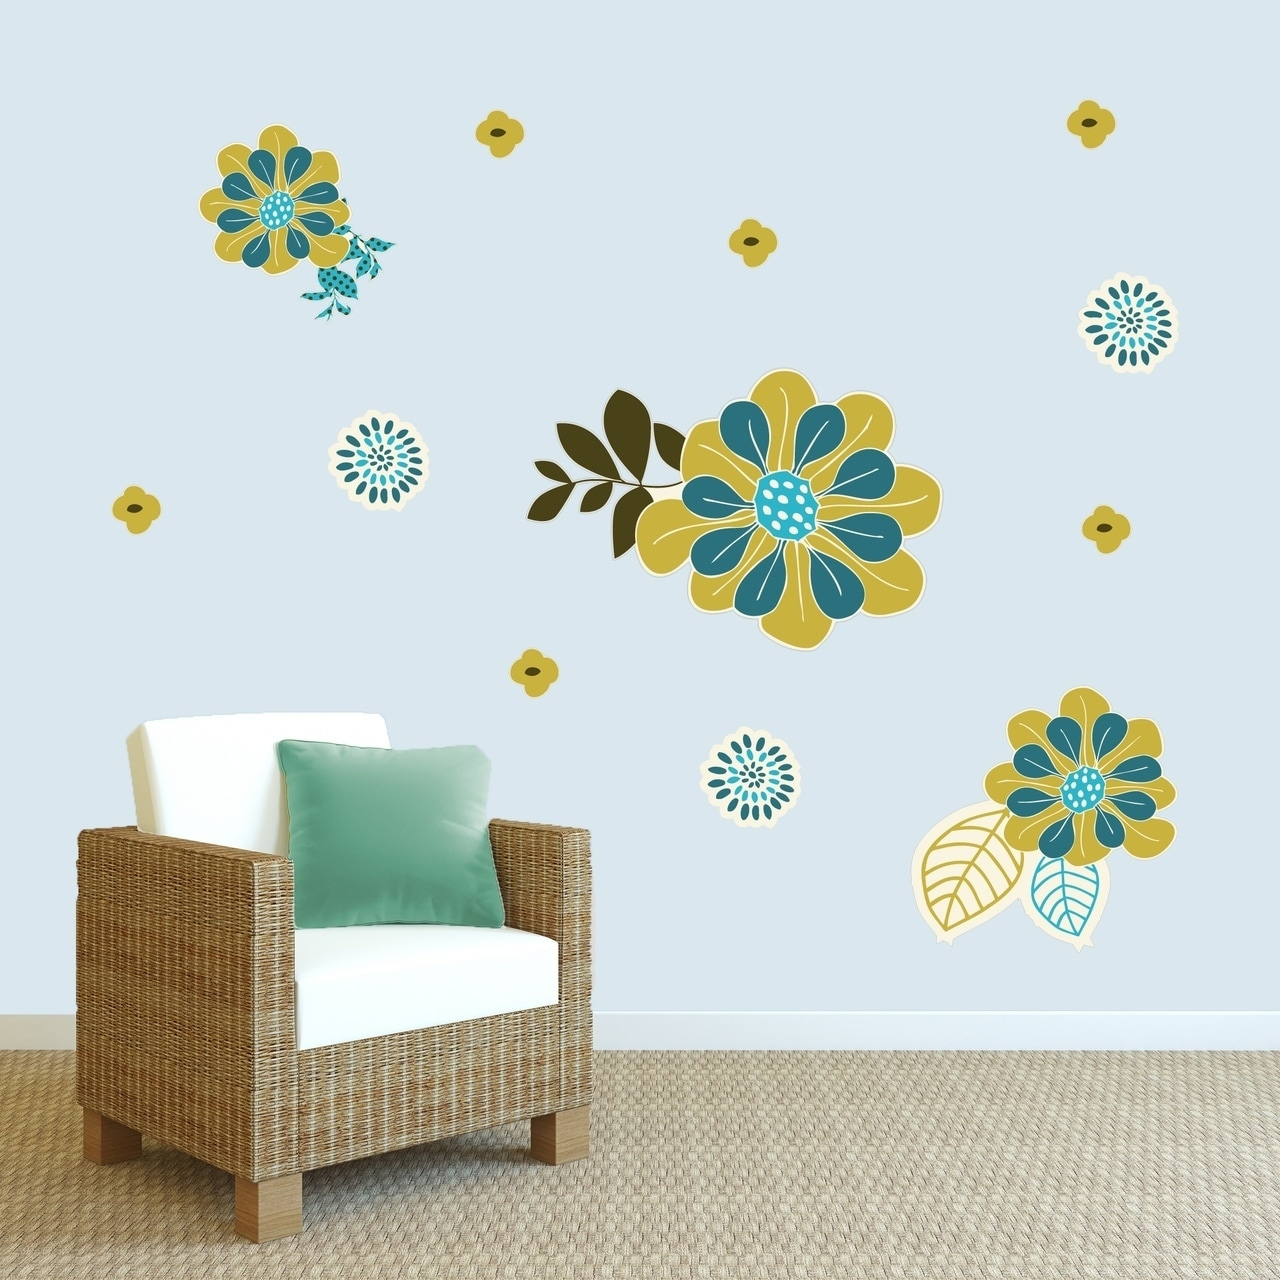 Green & Teal Flowers Printed Wall Decal Pack